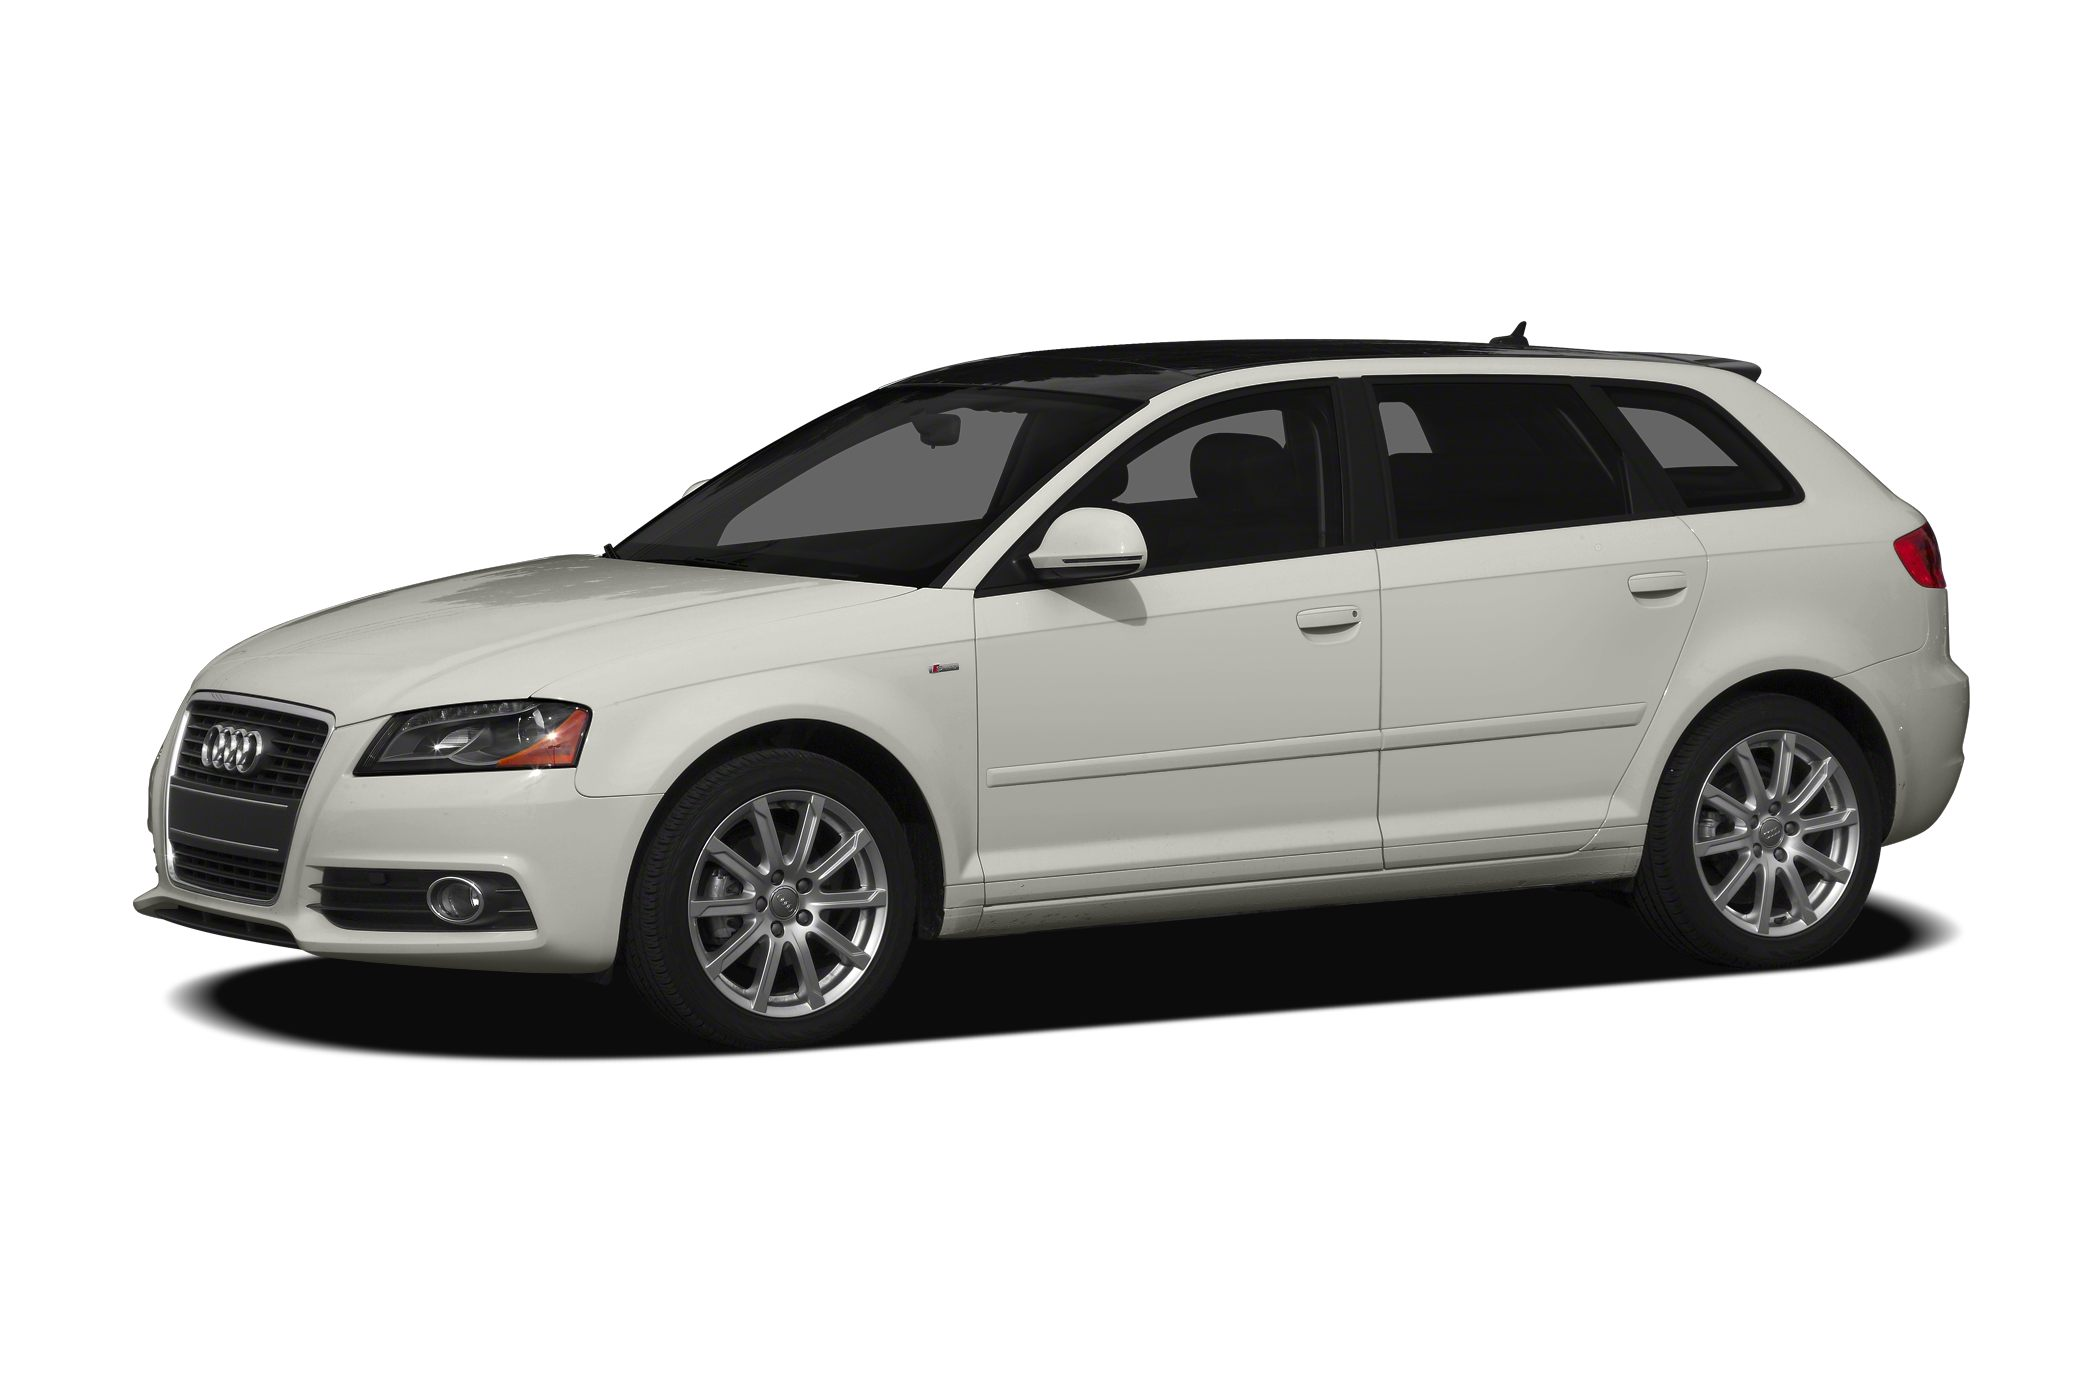 2012 Audi A3 2.0 TDI Premium Hatchback for sale in Raleigh for $15,990 with 75,702 miles